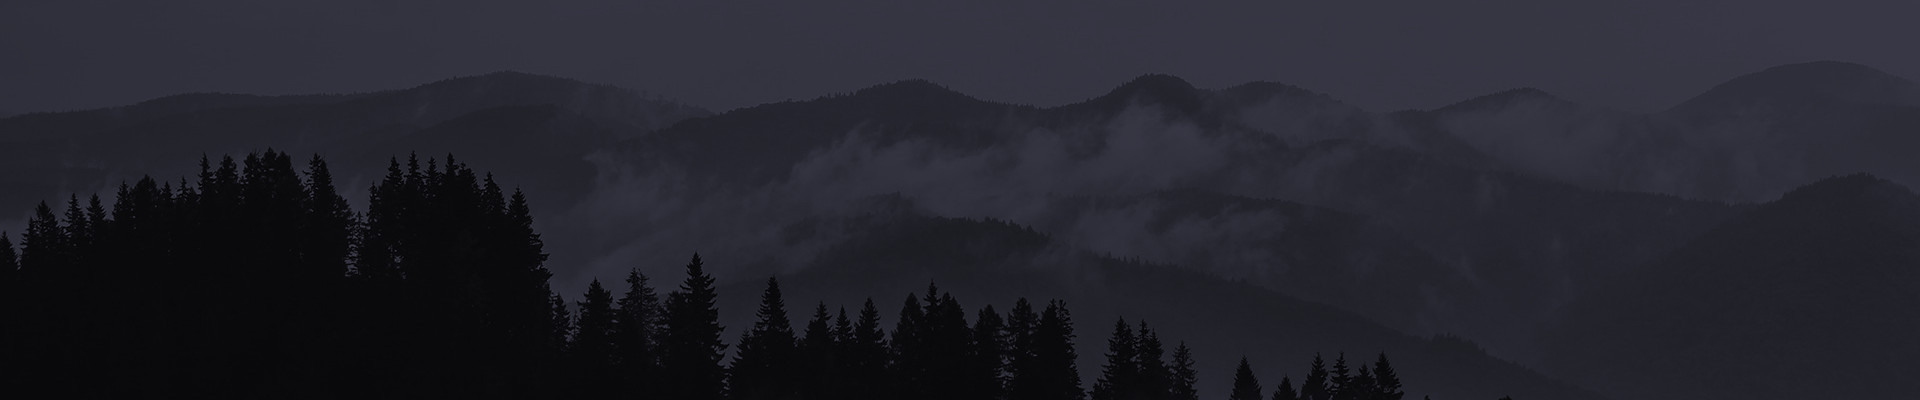 Clouds, Fog, Forest